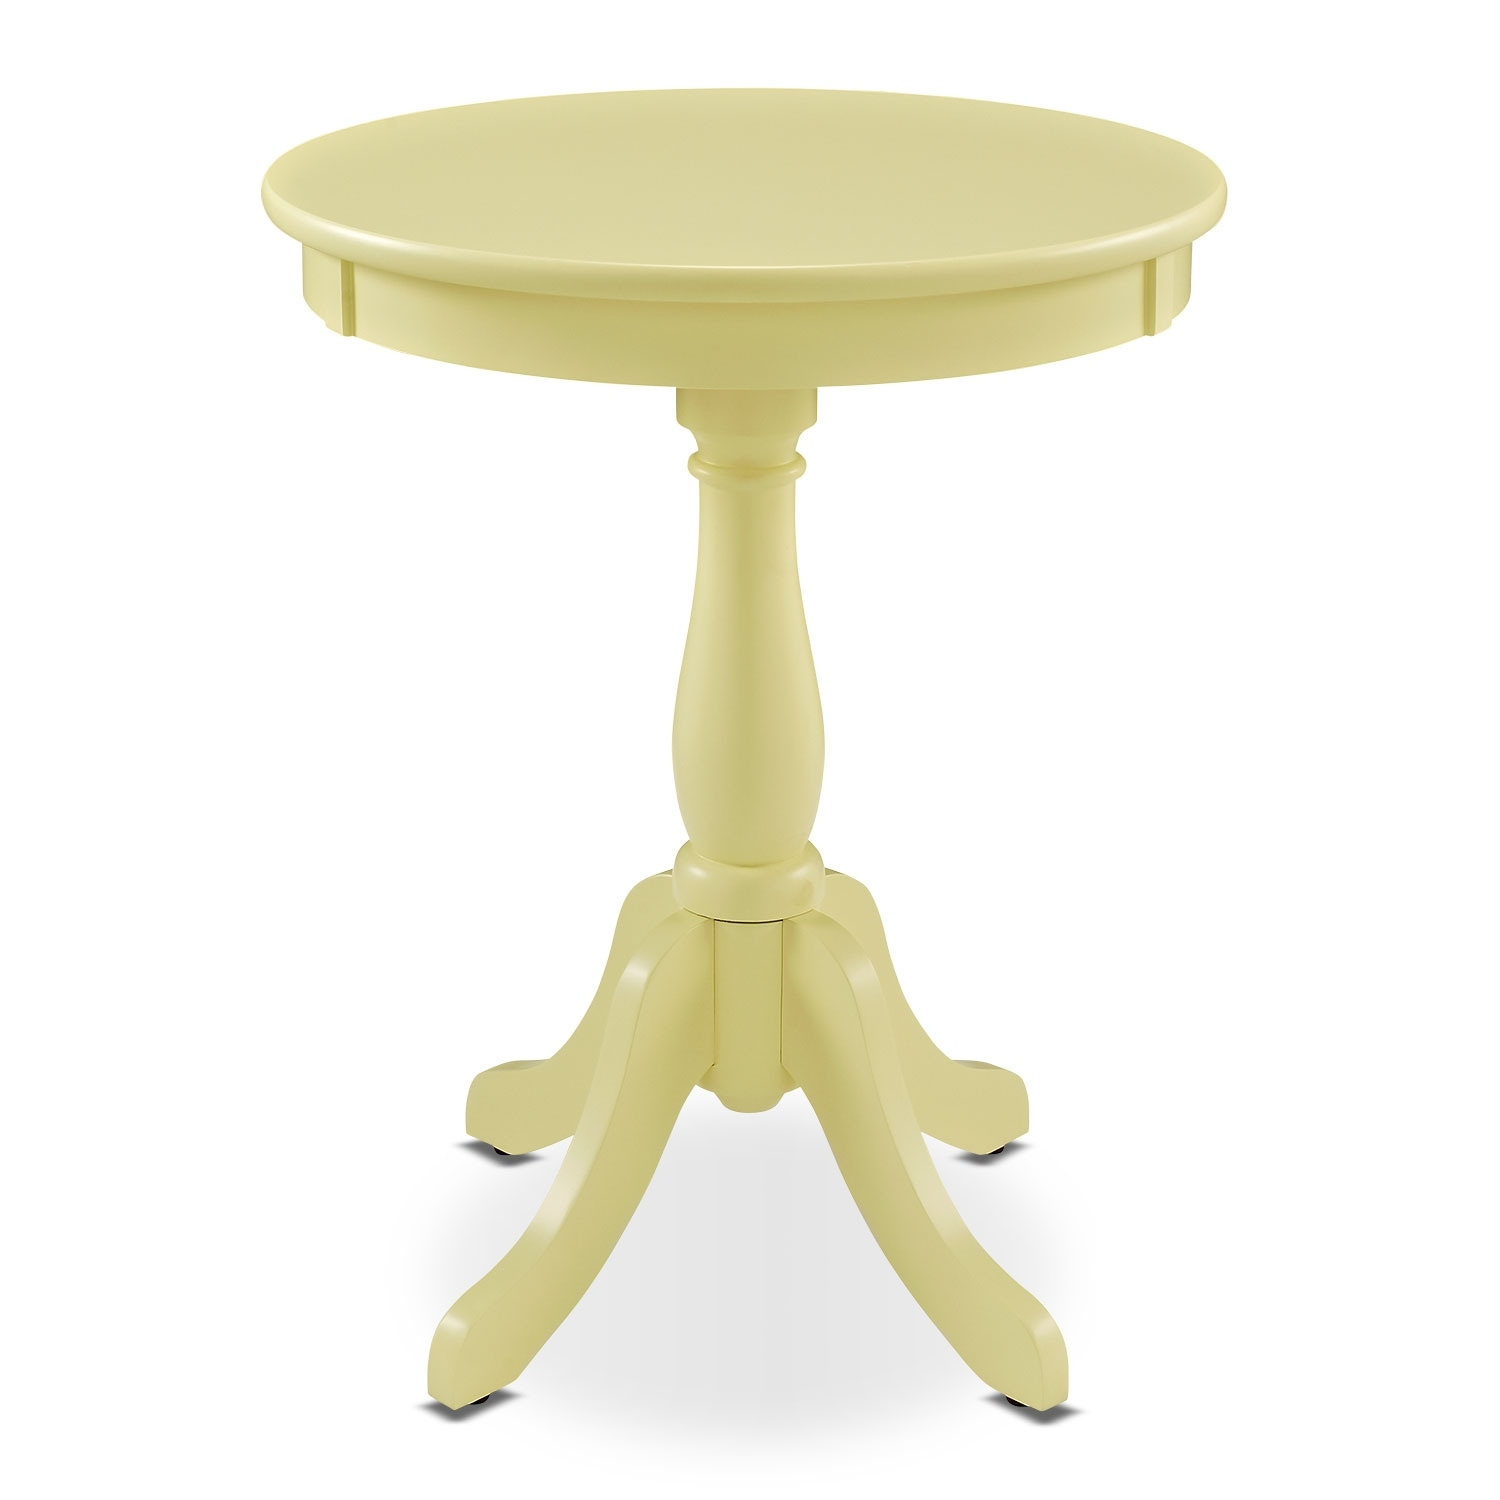 aron side table yellow american signature furniture outdoor accent click change white upholstered dining room chairs oval glass top small patio with umbrella clearance and sauder